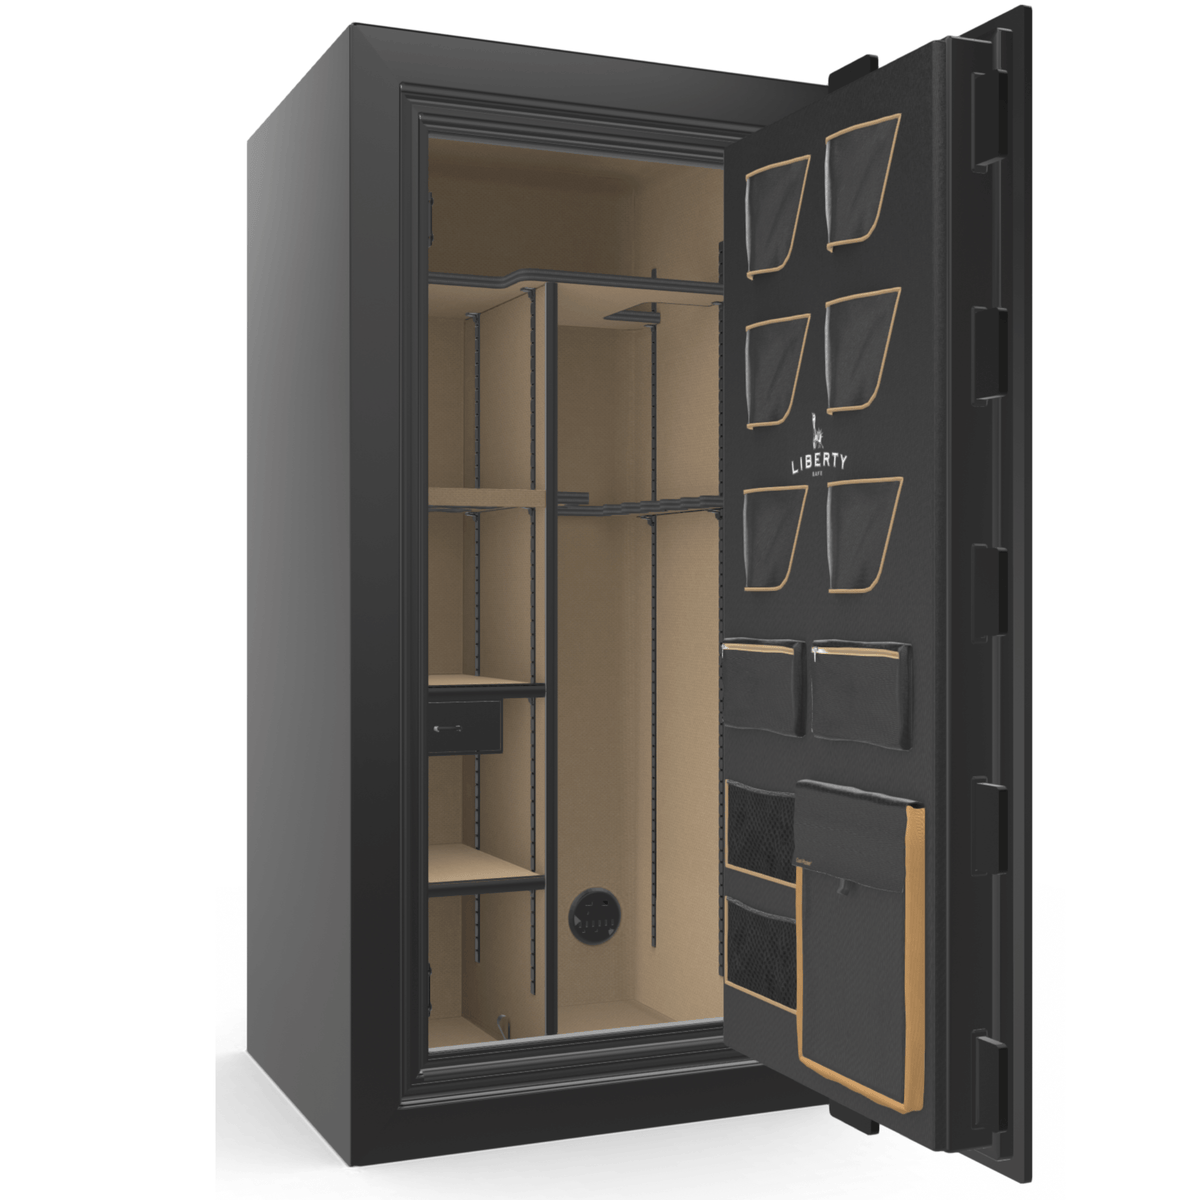 "Classic Plus | 25 | Level 7 Security | 110 Minute Fire Protection | Black Gloss | Brass Electronic Lock | 60.5""(H) x 30""(W) x 29""(D)"